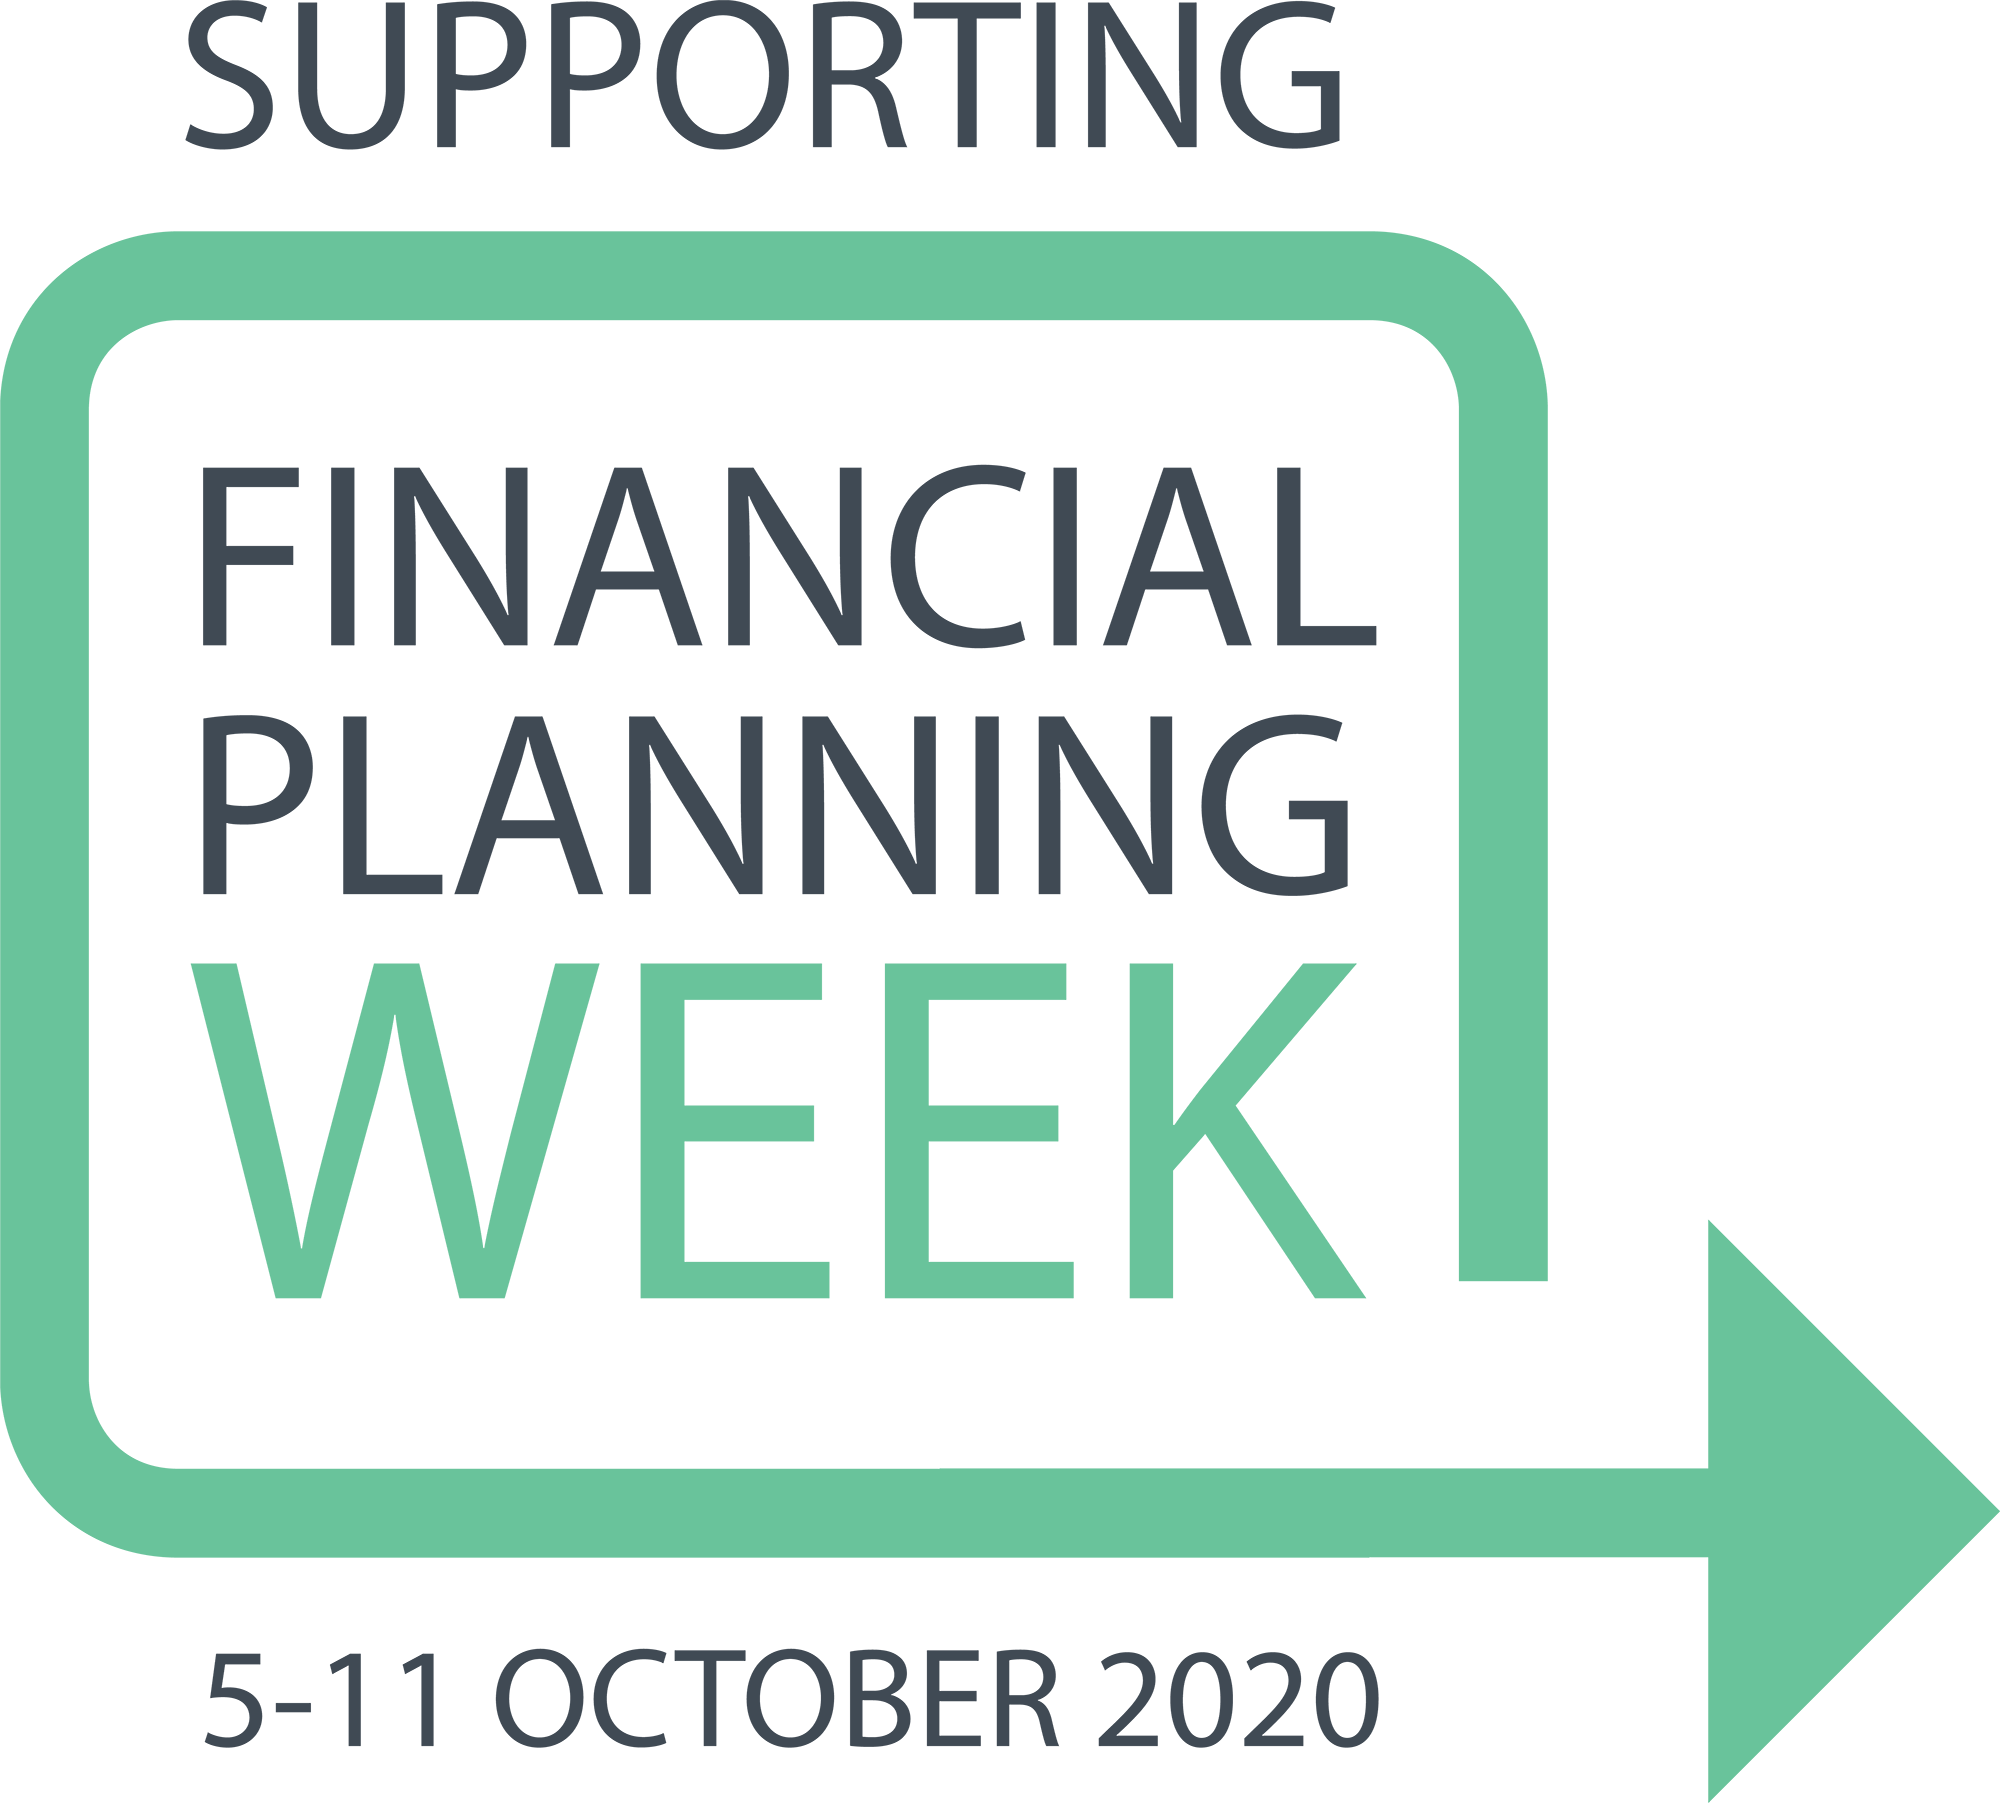 Montage signs up for CISI Financial Planning Week!